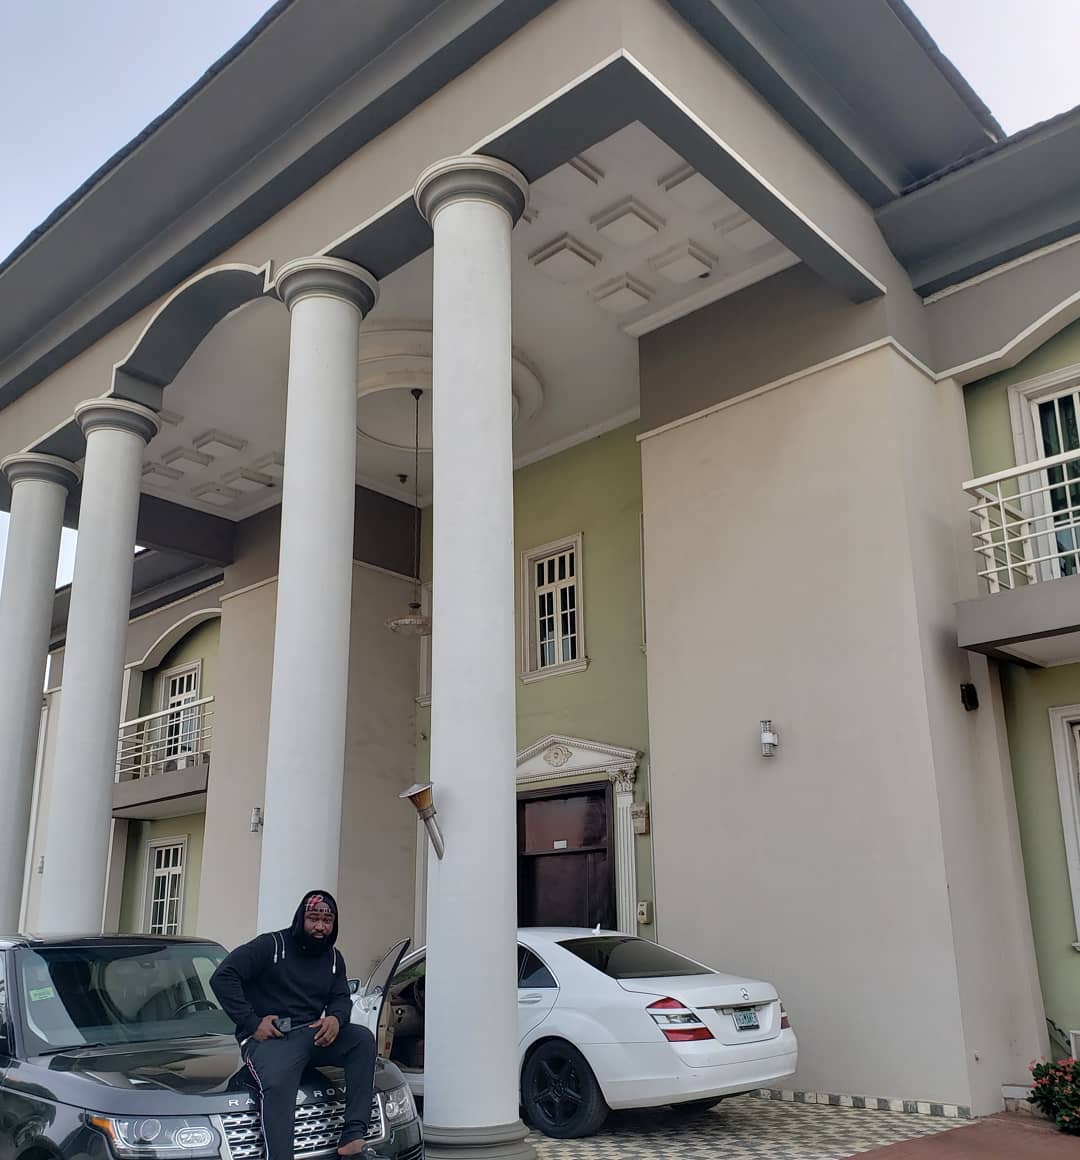 Harrysong Shows Exterior & Interior Of His House